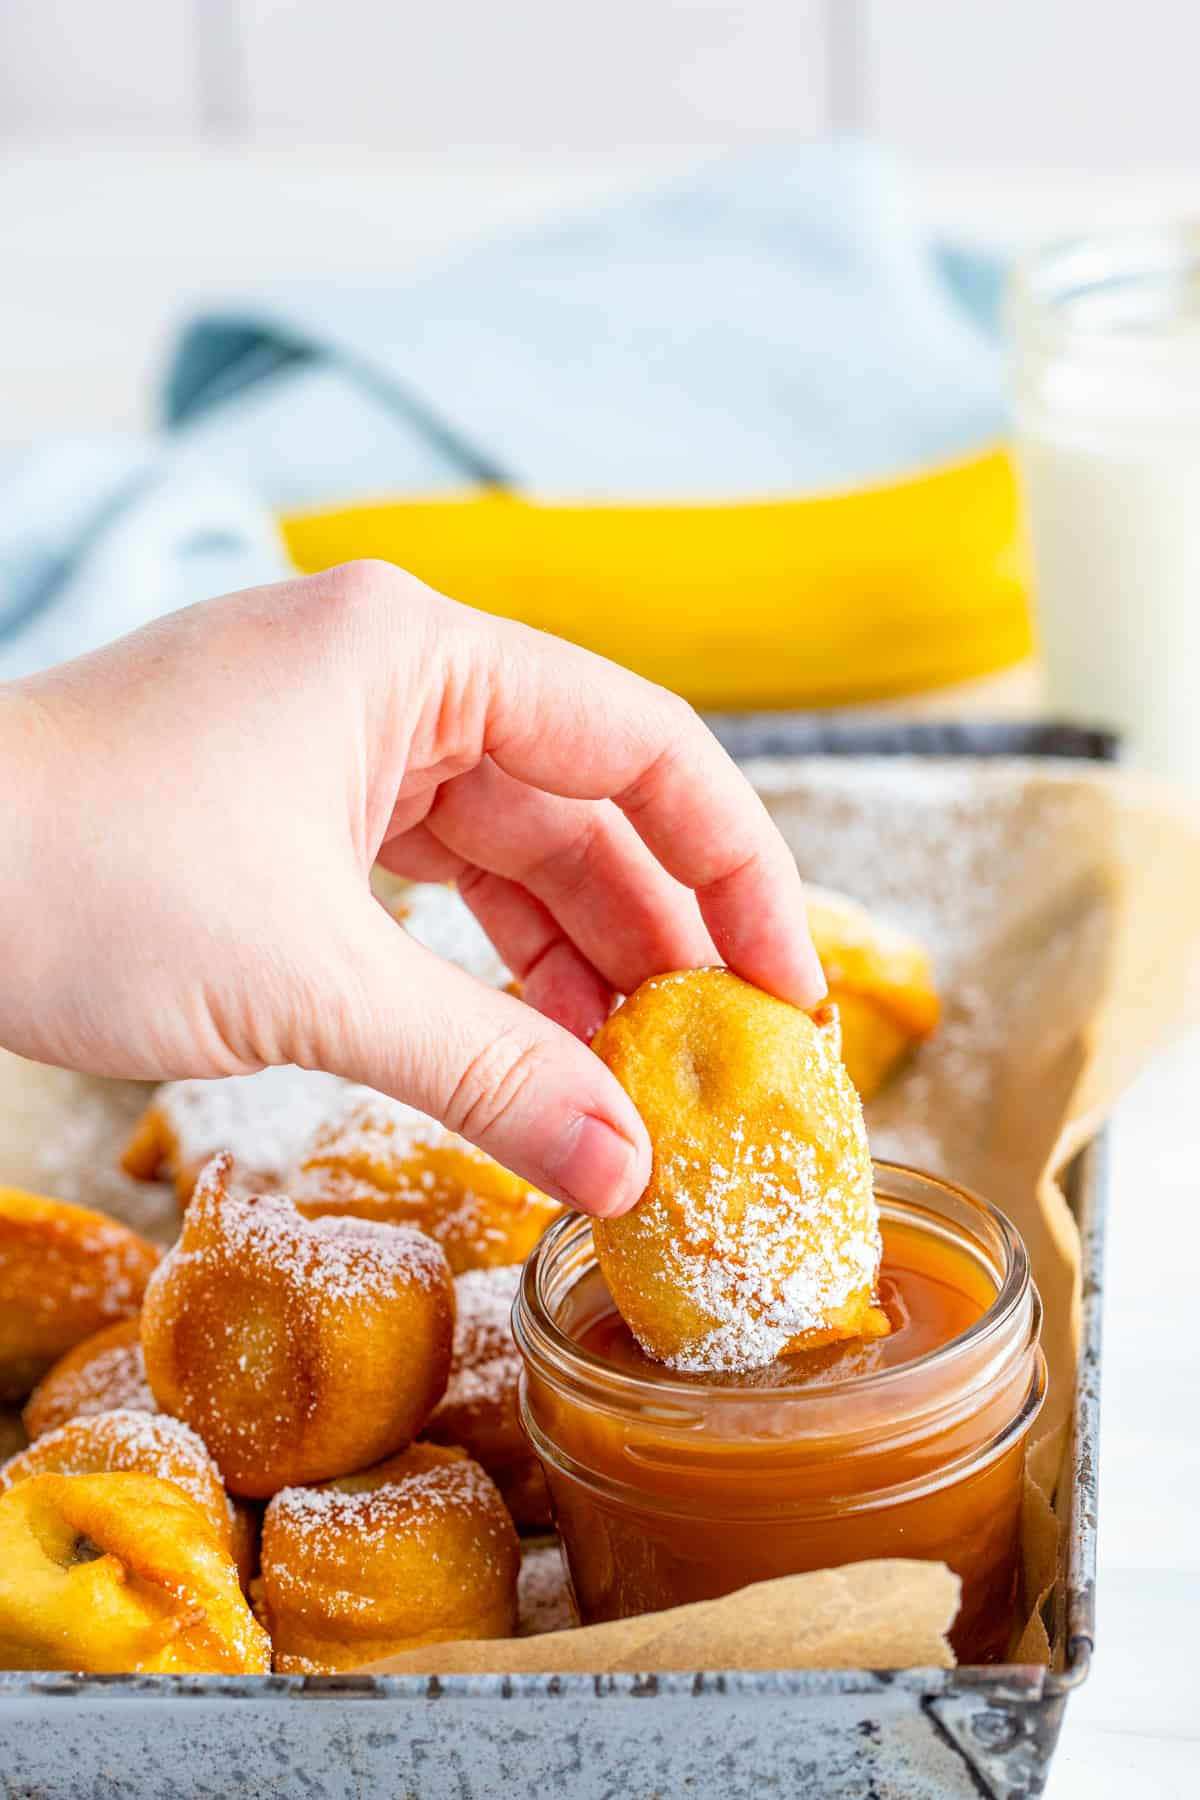 Hand dipping one Funnel Cake Bite into caramel sauce